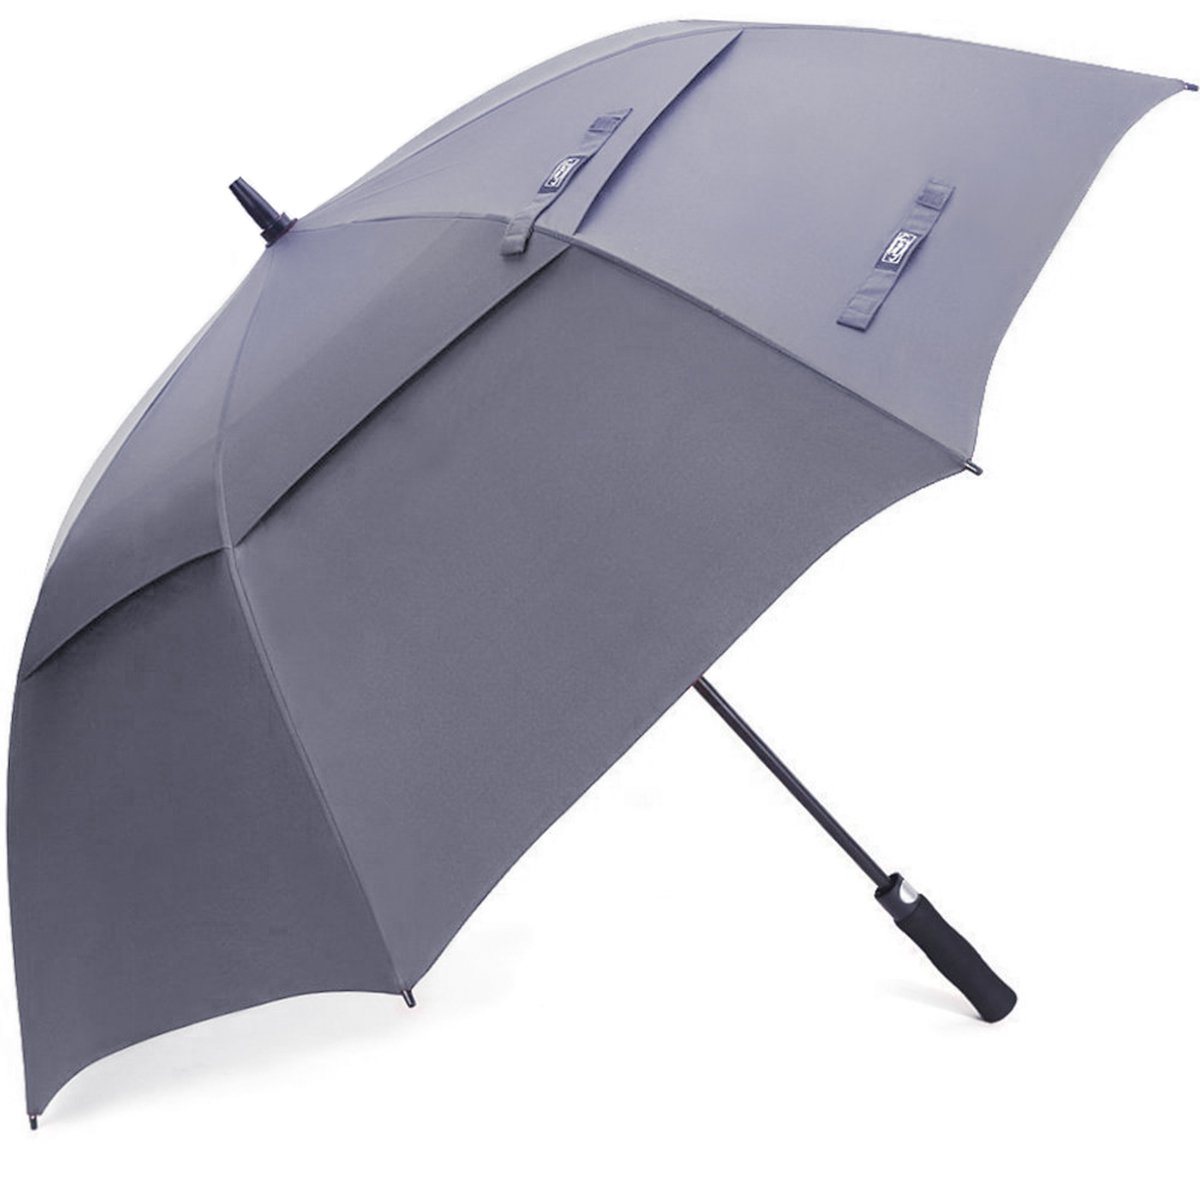 G4Free Ultimate Golf Umbrella Double Canopy Large Oversize Grey Windproof Waterproof Automatic Collapsible Best for Men (Grey)